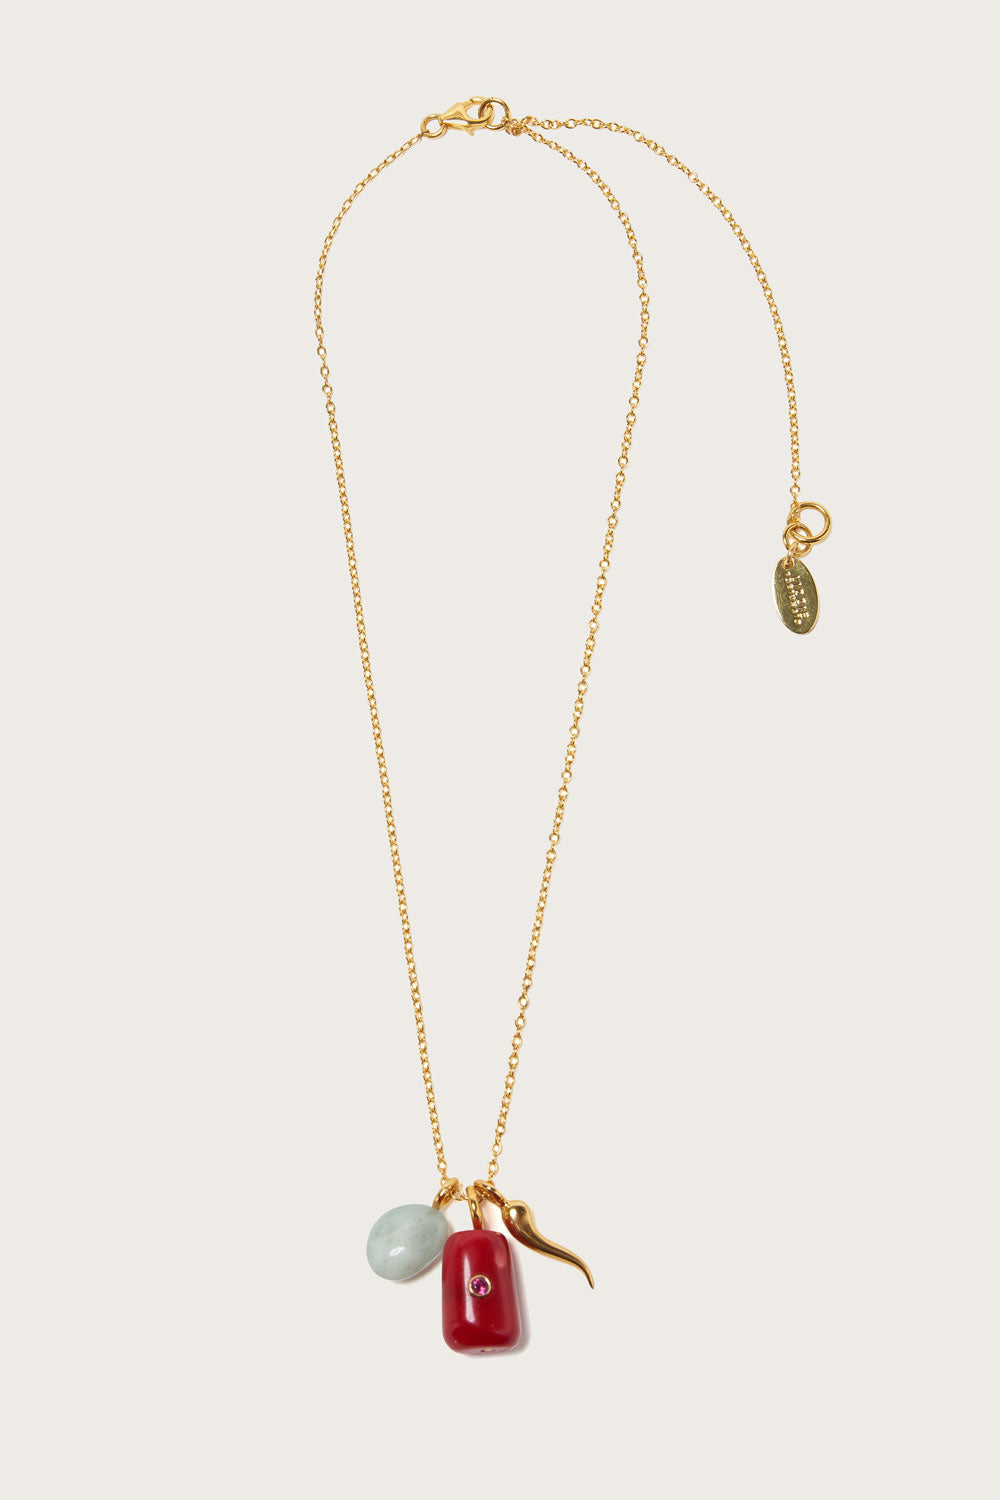 *Pre-Order* Oasis Necklace in Coral